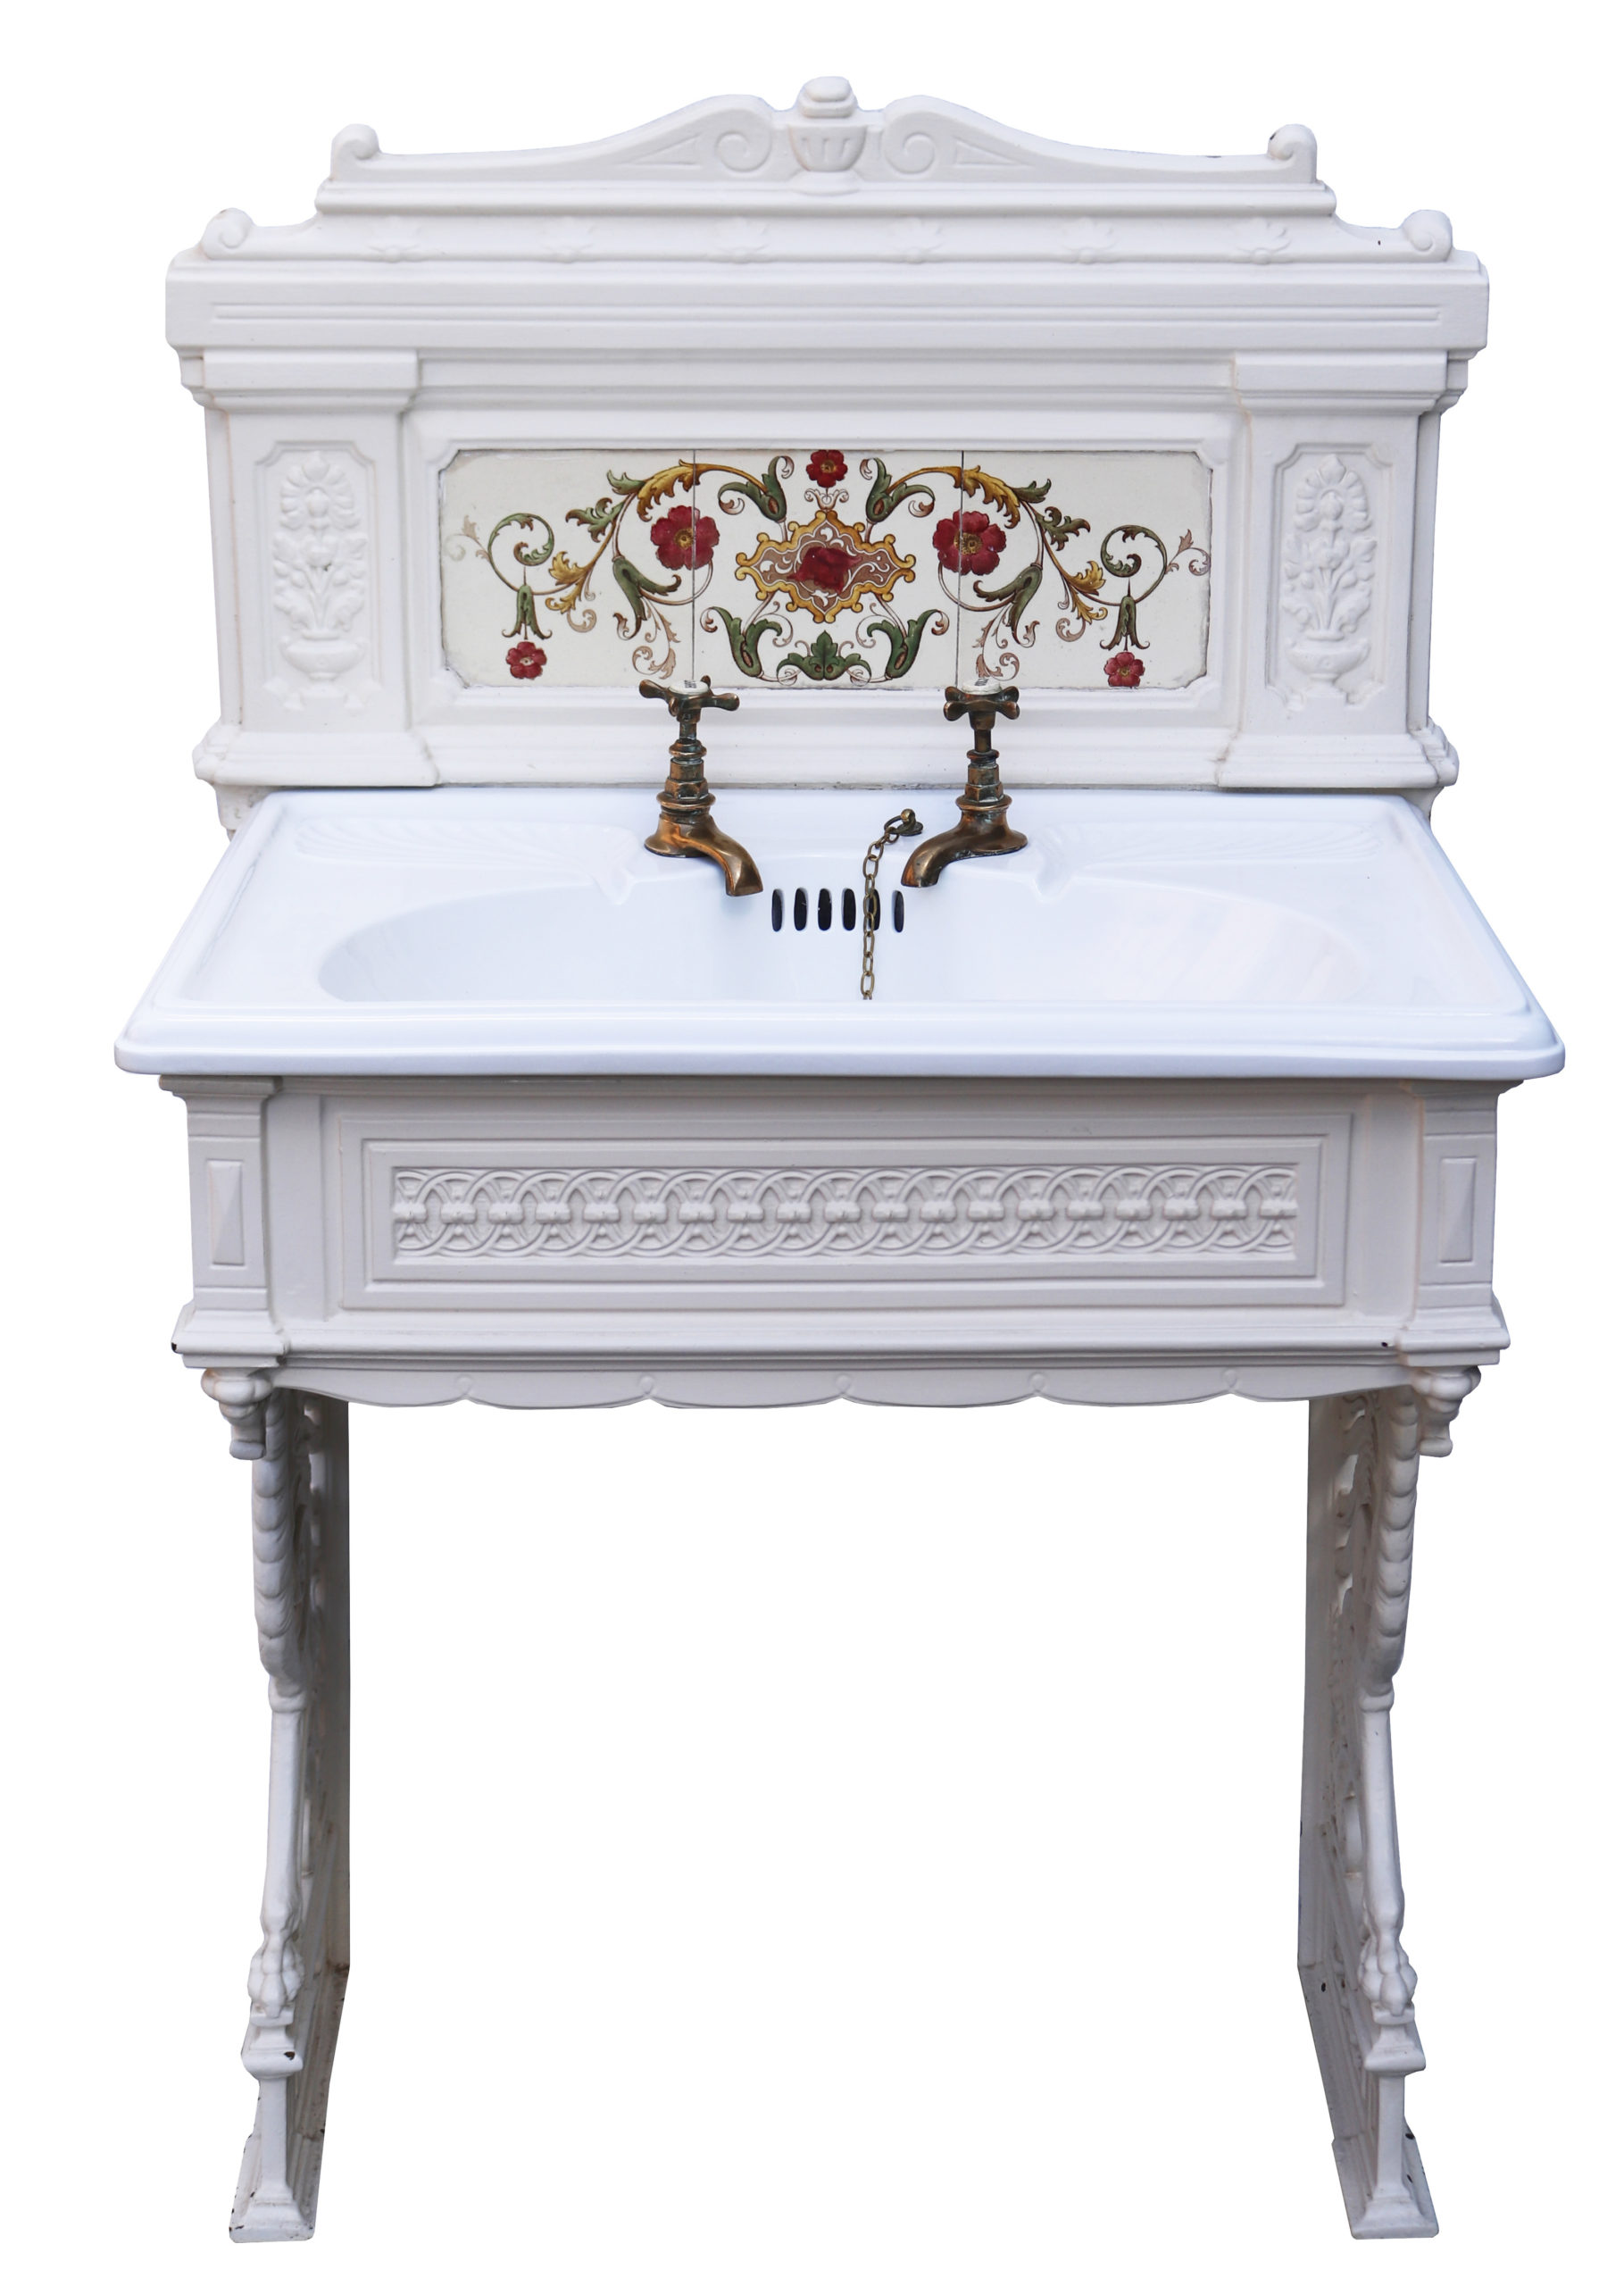 An Antique Victorian Style Sink /Basin with Stand